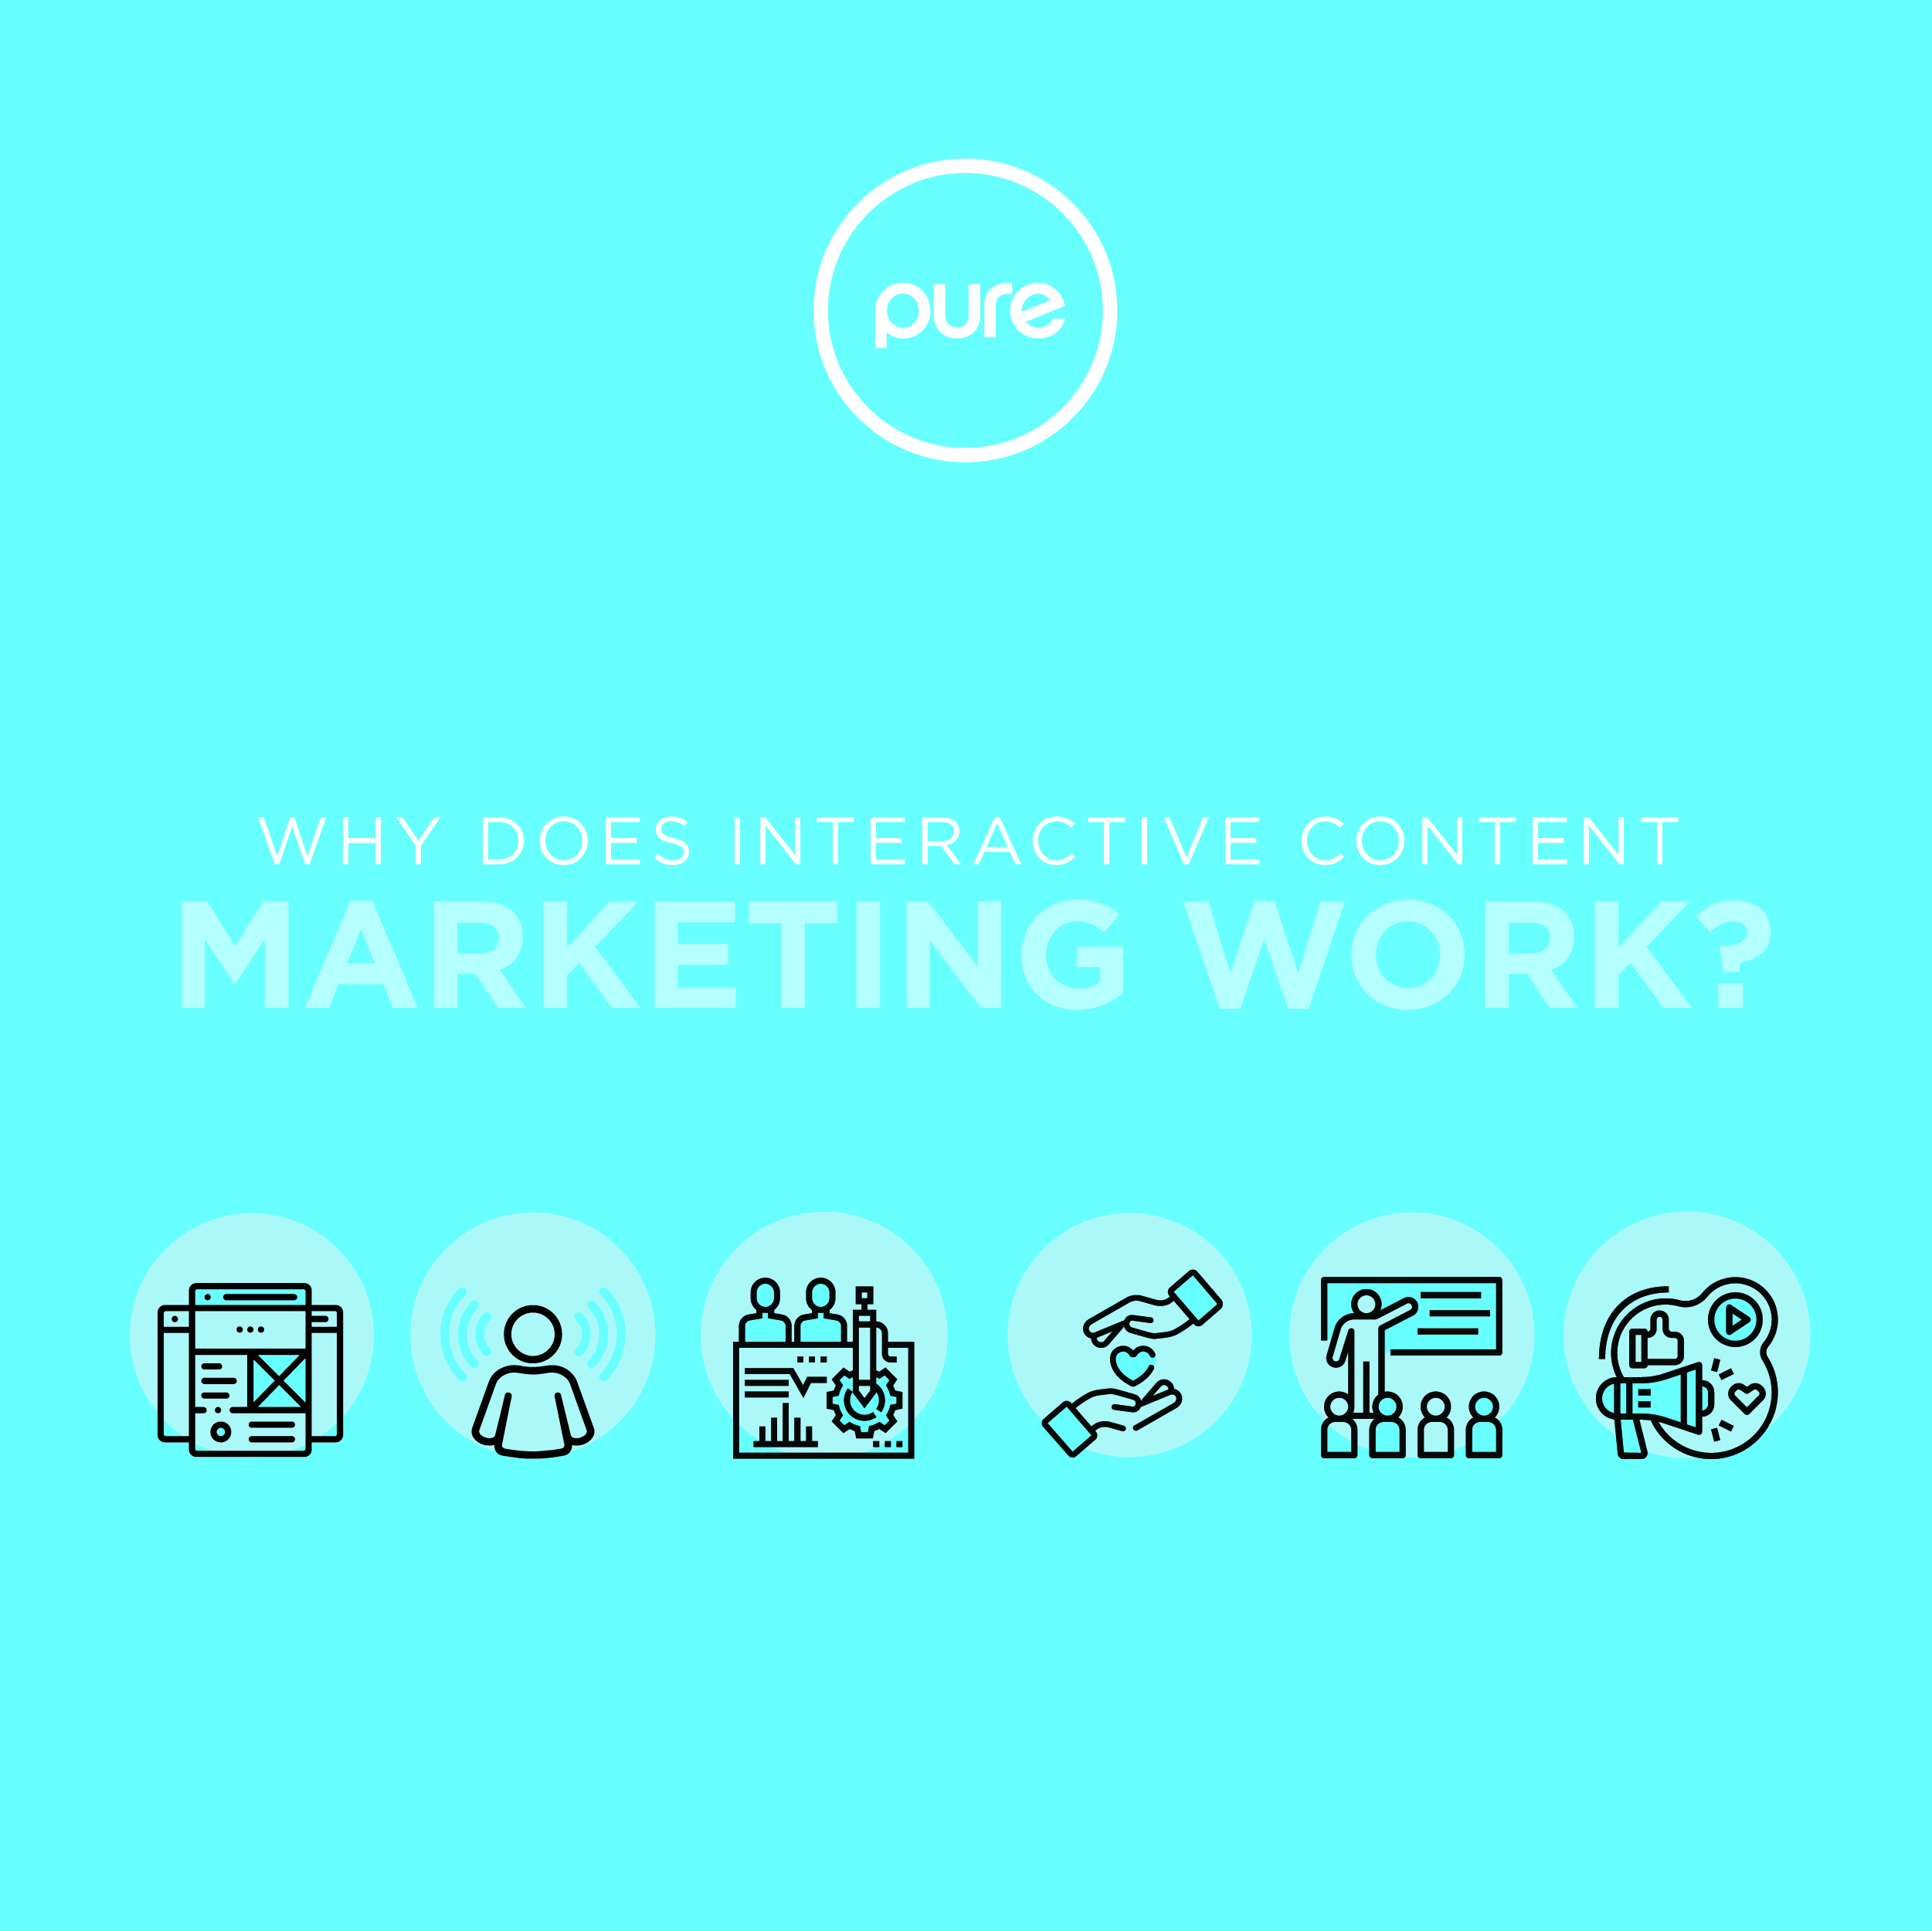 Why Does Interactive Content Marketing Work?